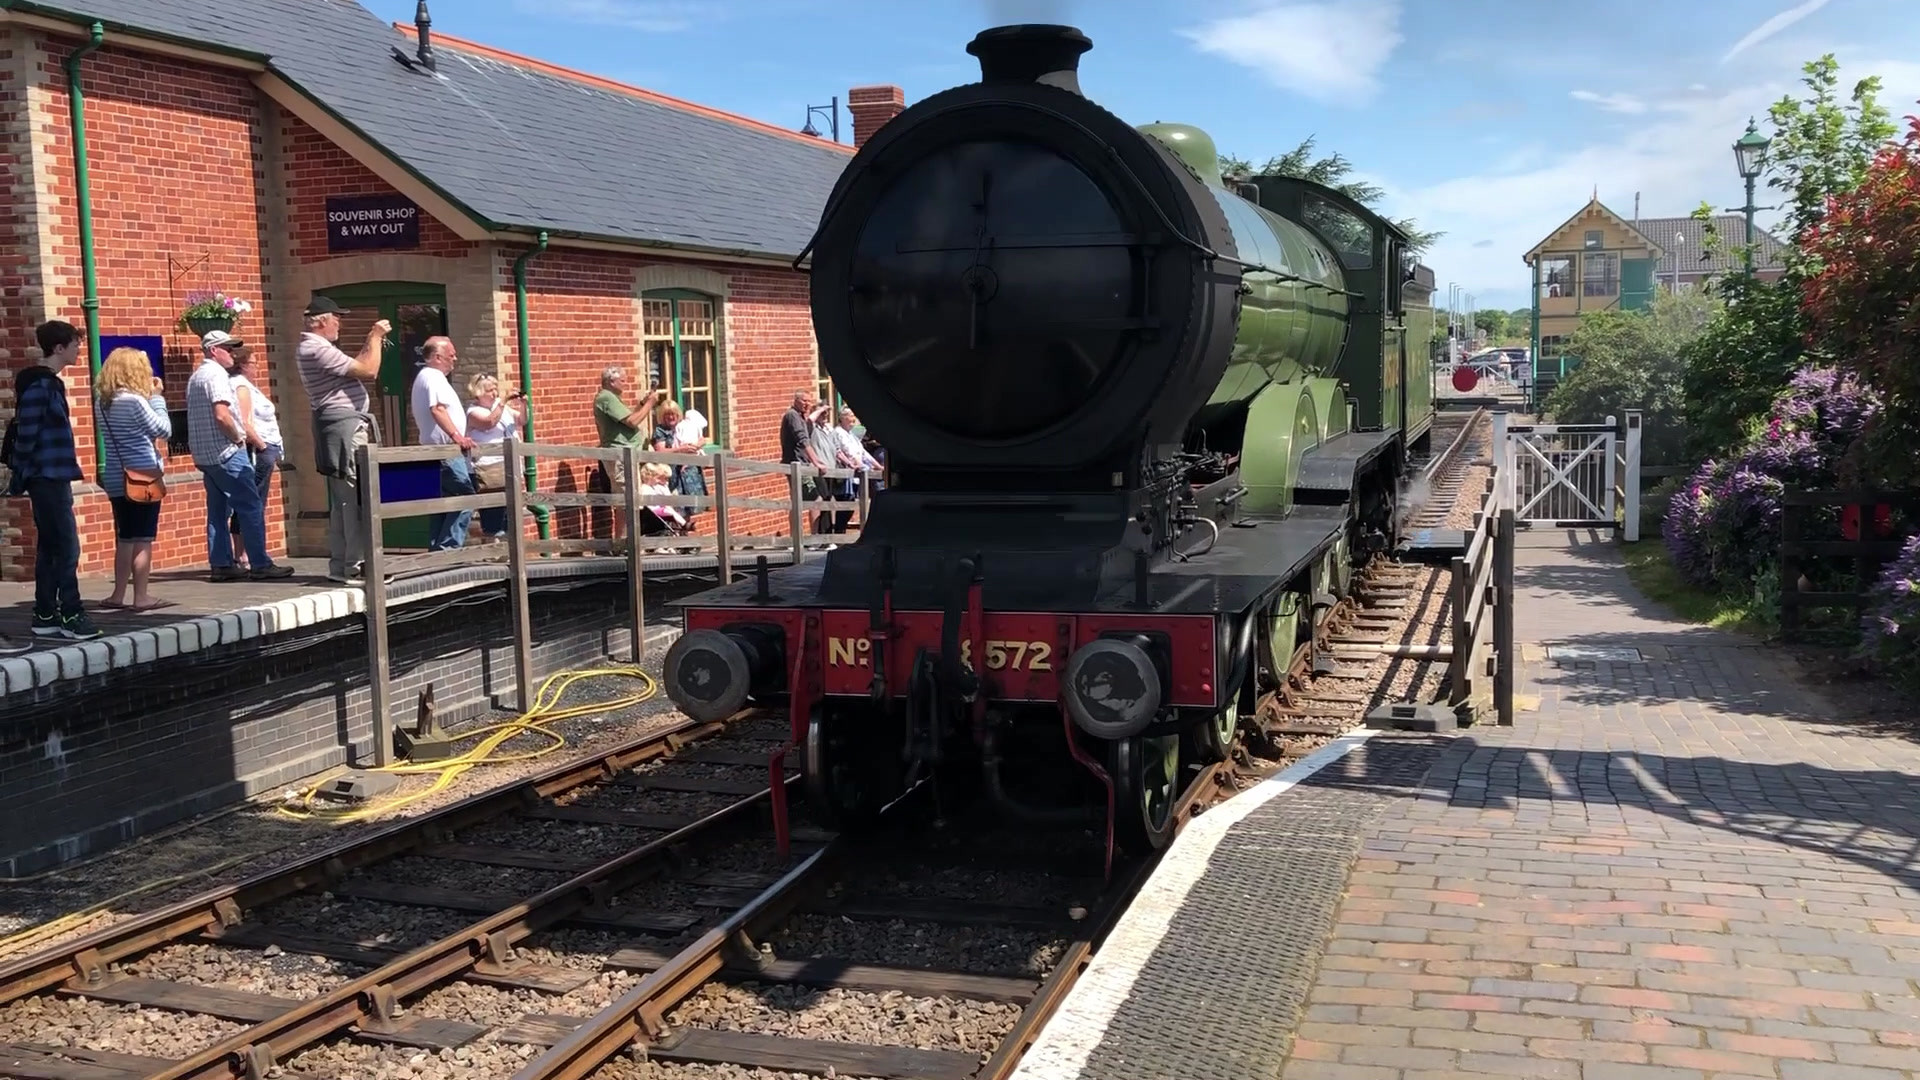 north norfolk railway 8572 steam engine turn around sheringham